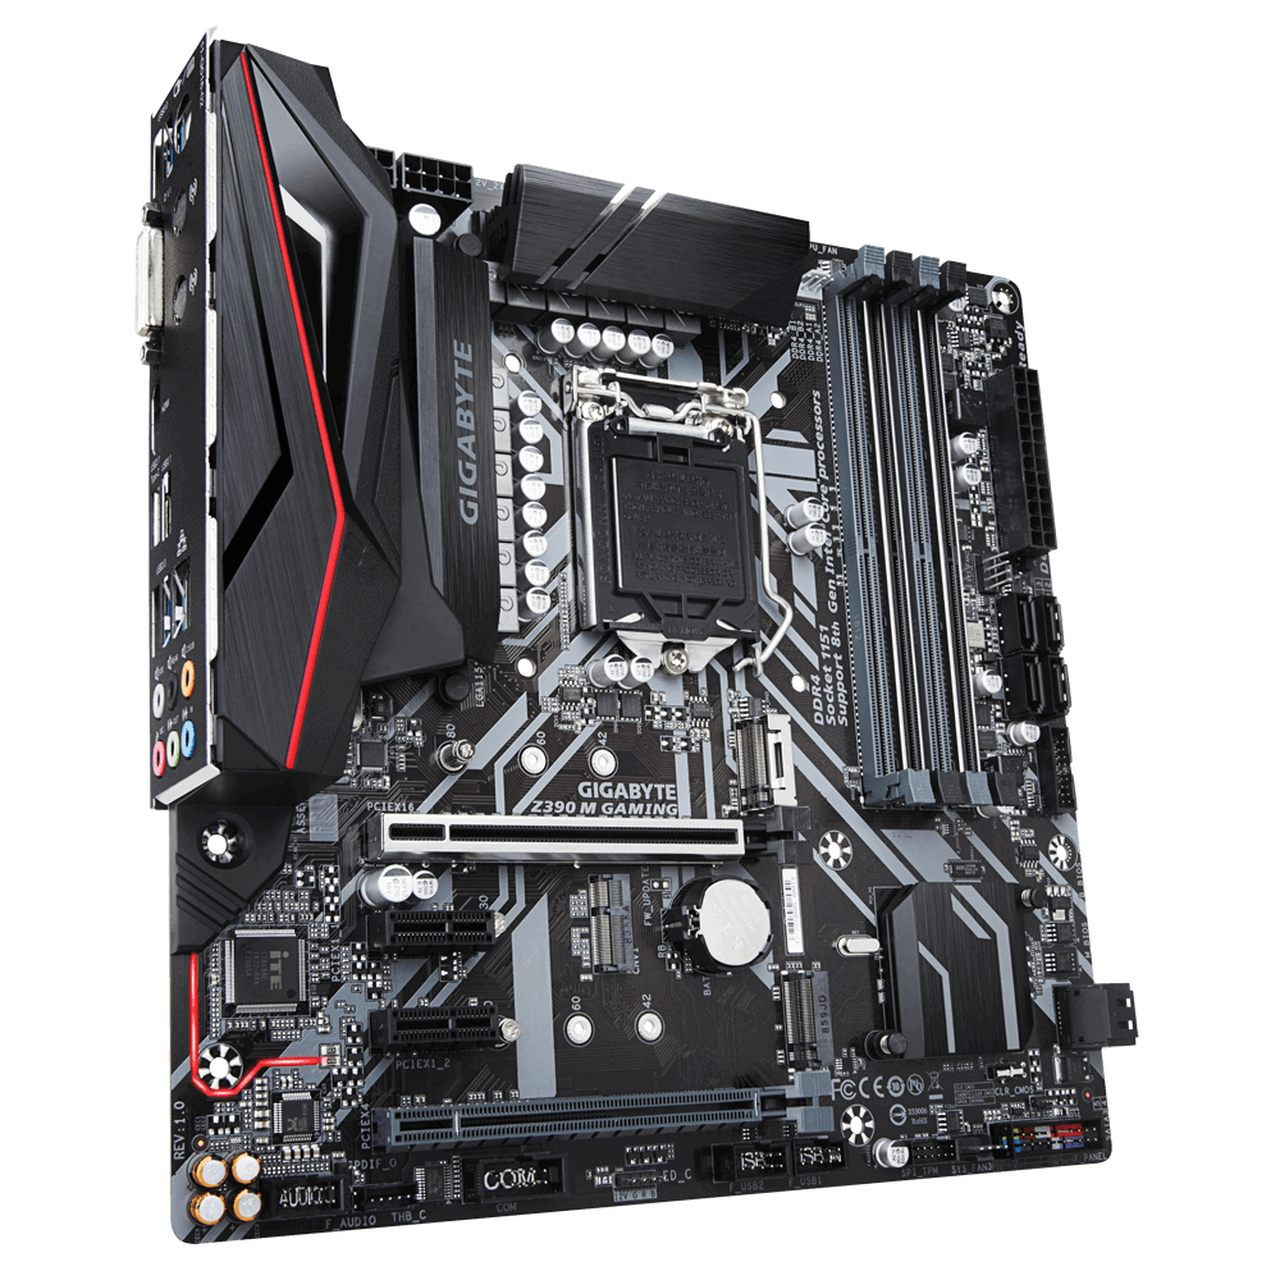 Placa mãe Gigabyte Z390 M Gaming, Chipset Z390, Intel LGA 1151, DDR4